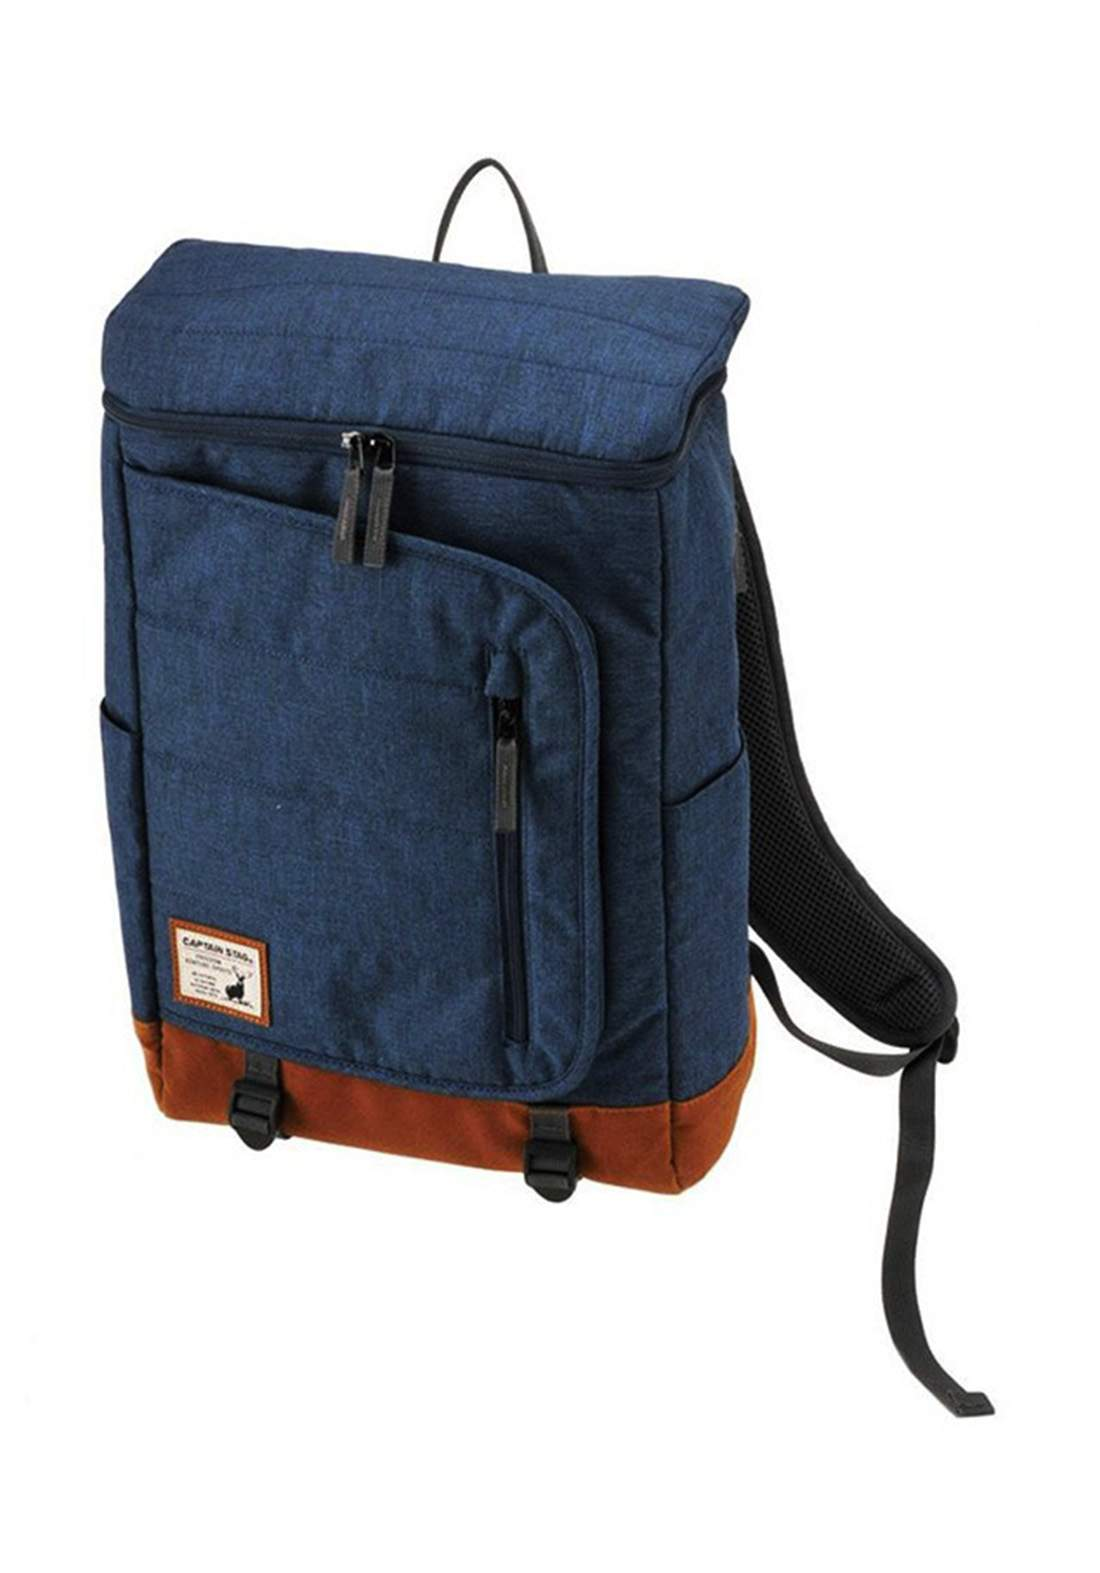 Captain Stag UP-2624 Day Bag Travel Backpack حقيبة ظهر رياضية